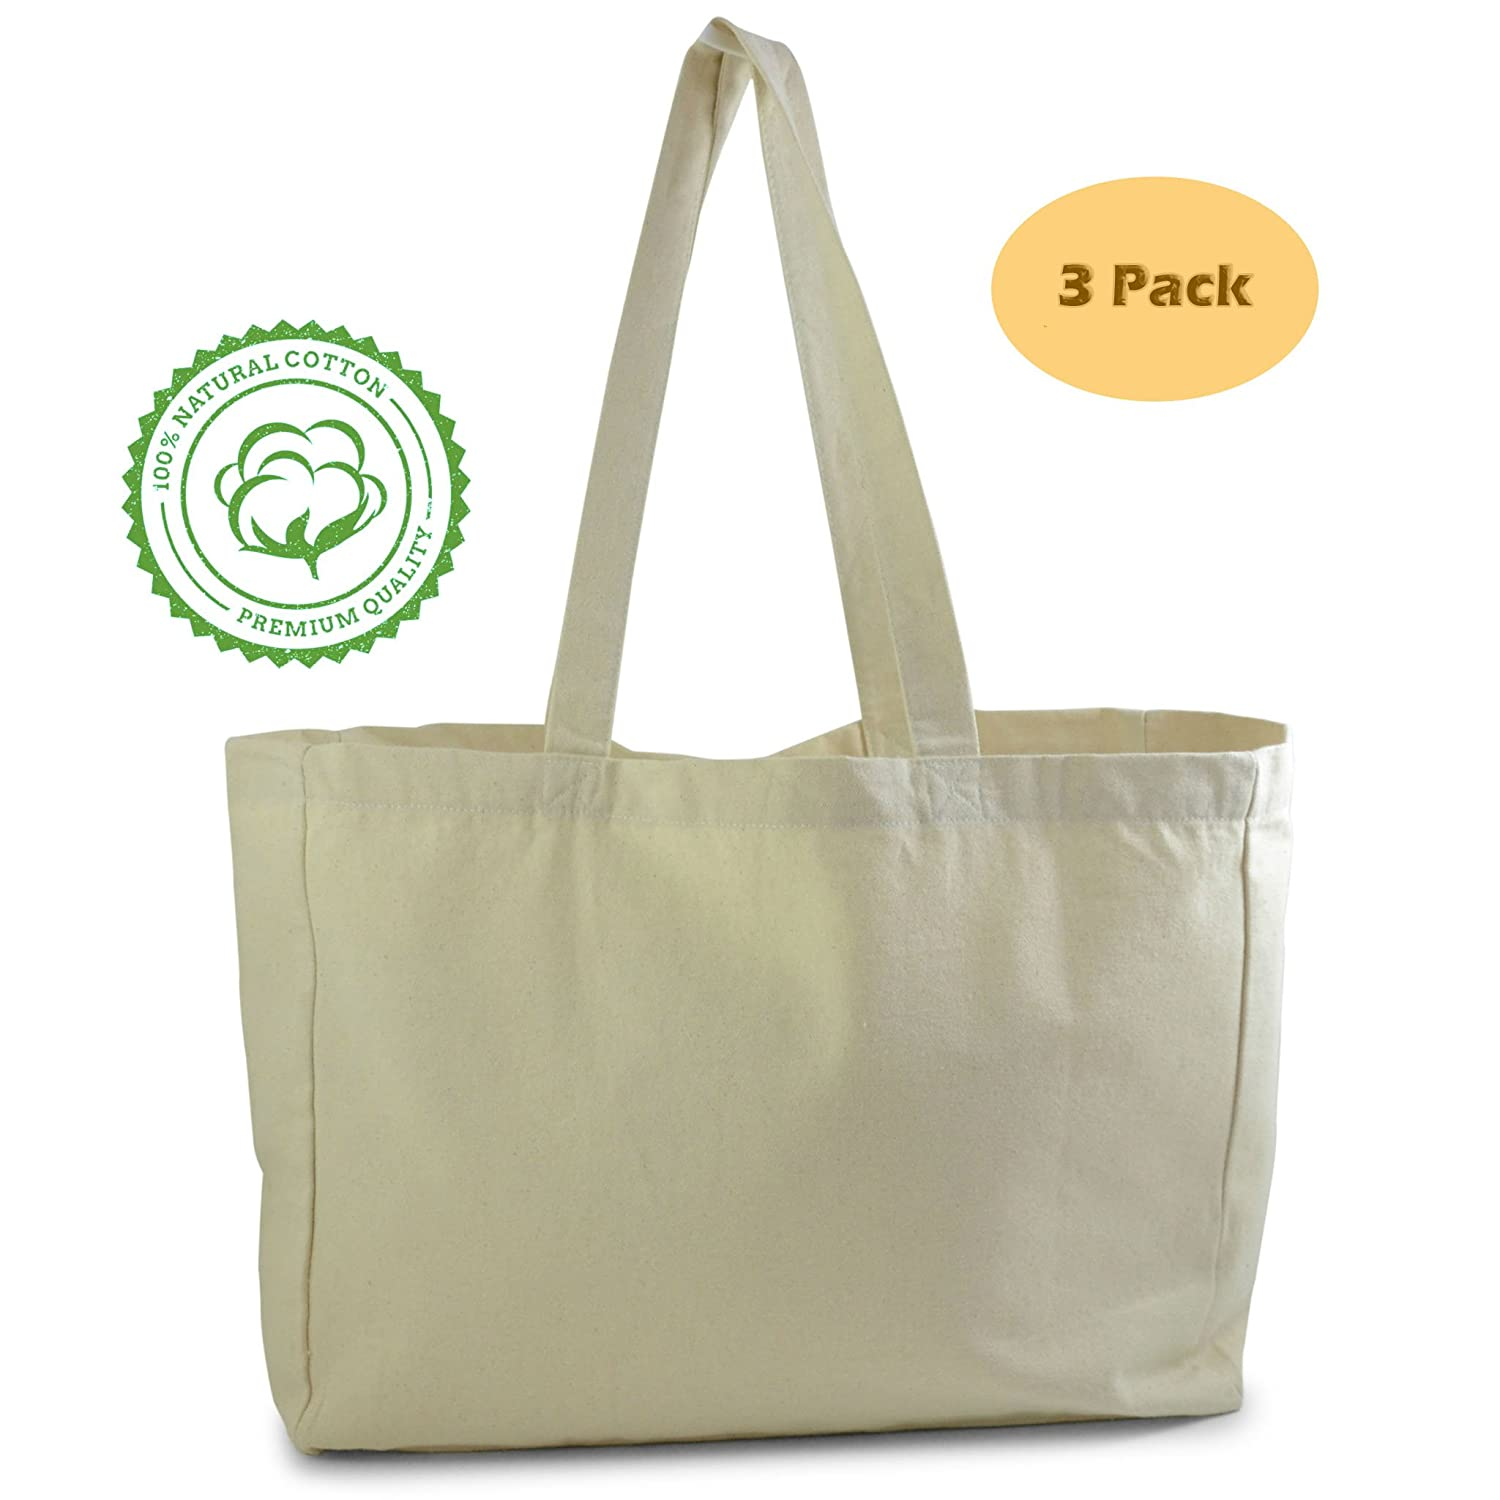 Natural Cotton Canvas Tote Bag perfect for beach, grocery shopping, craft projectsextra thick, large, durable,washable,100% cotton by URBAN VERDURE B01HYK6KJ8